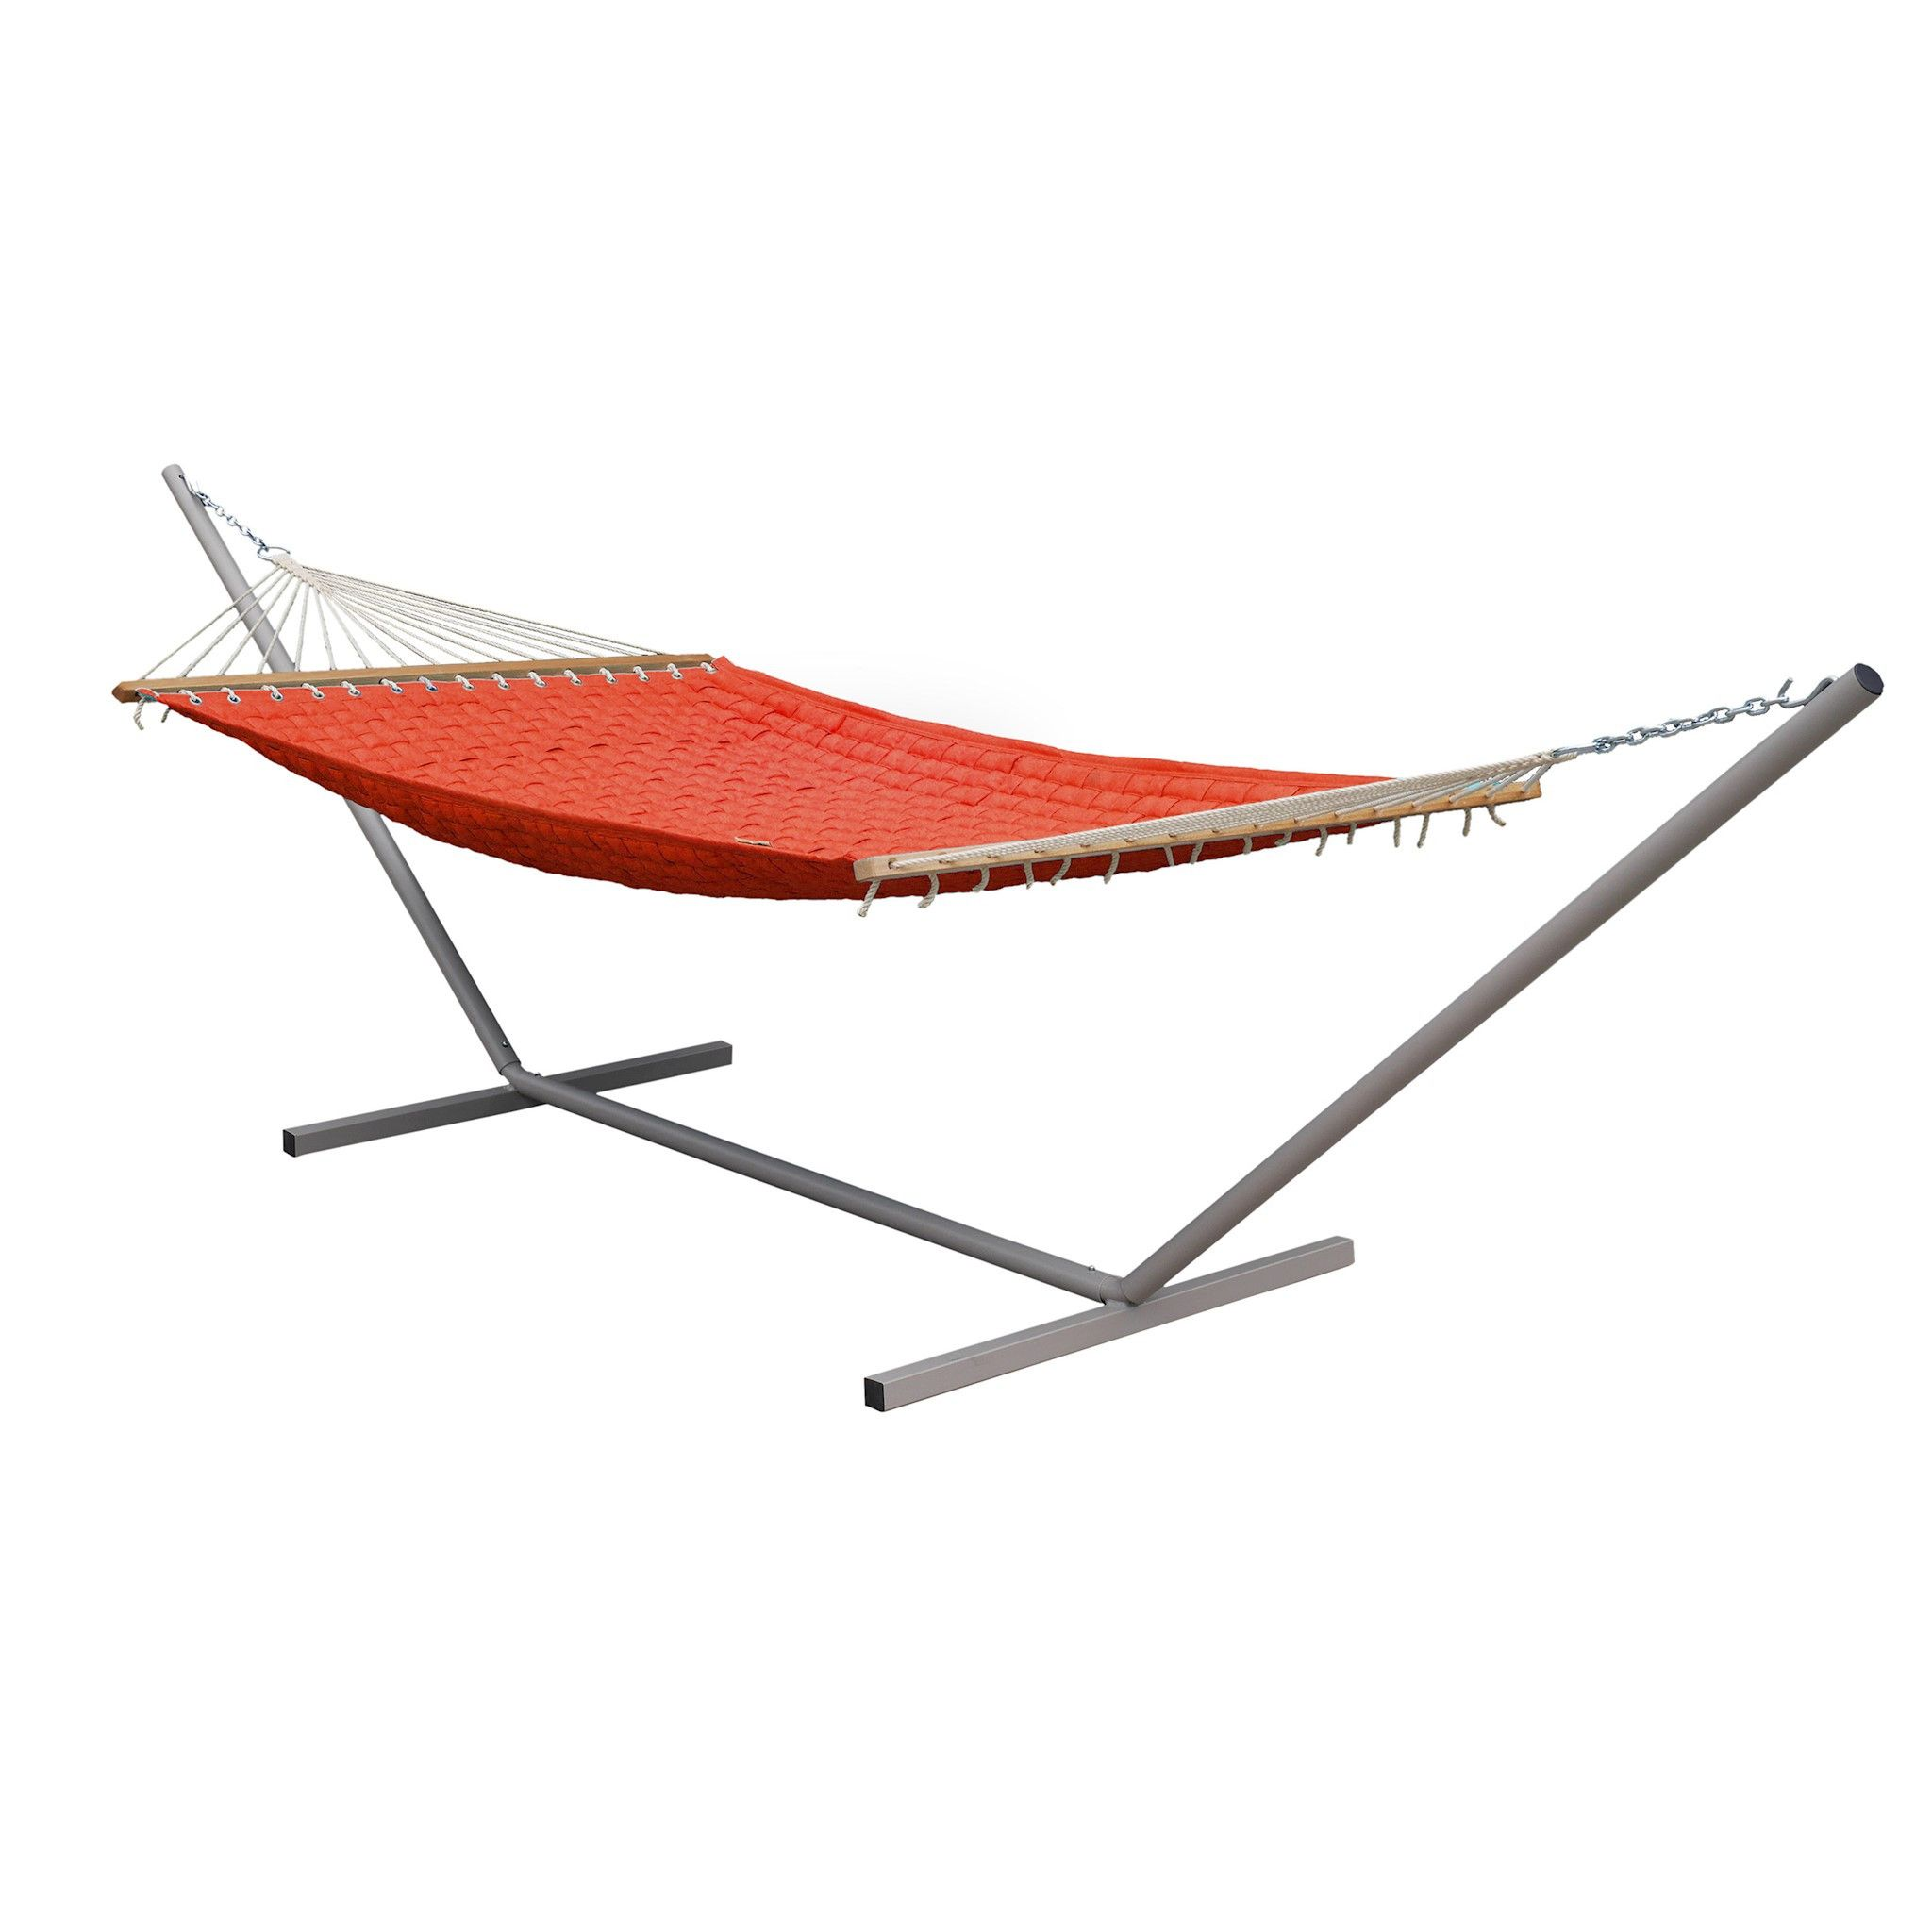 the hamaca deck set includes a spacious basket weave hammock which is plenty big enough for 2 adults  the hammock is a rich chilli red colour     it u0027s another  screaming deal from the  wedo guys http      rh   pinterest